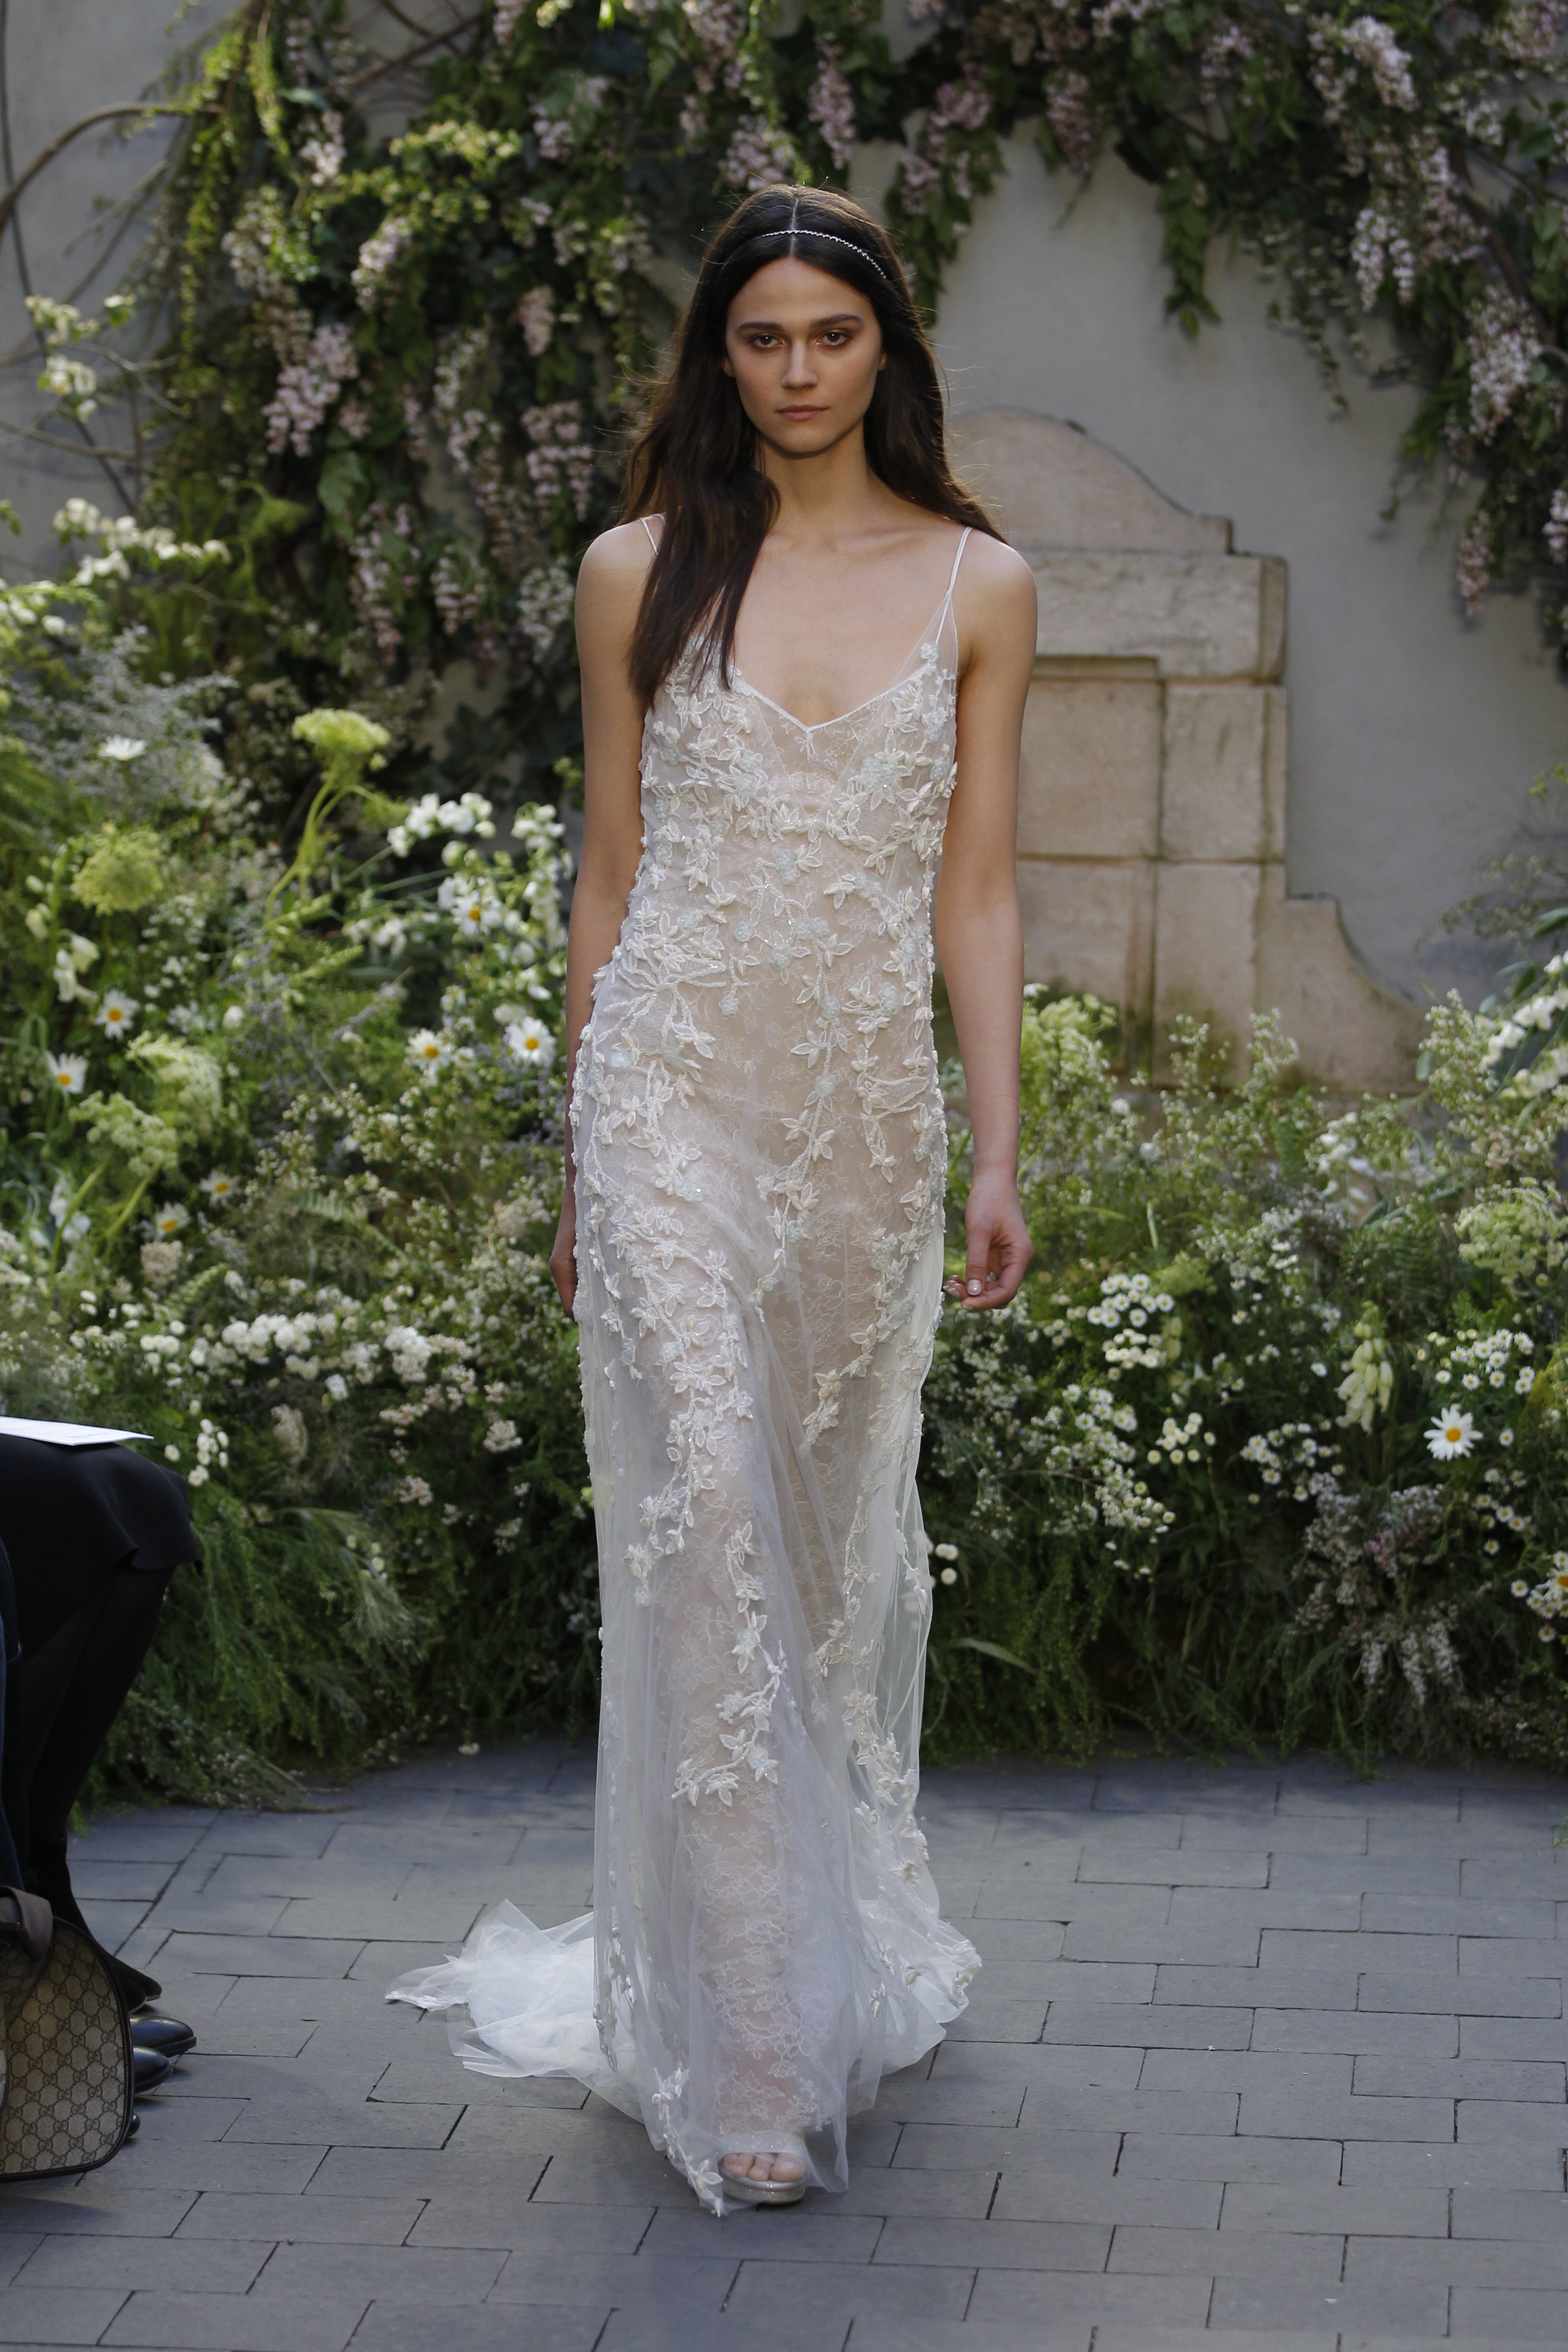 Monique Lhuillier Although A Newer Name On The Market As Compared To Fashion Giants Has Managed Attract Pretty Impressive Fan Base